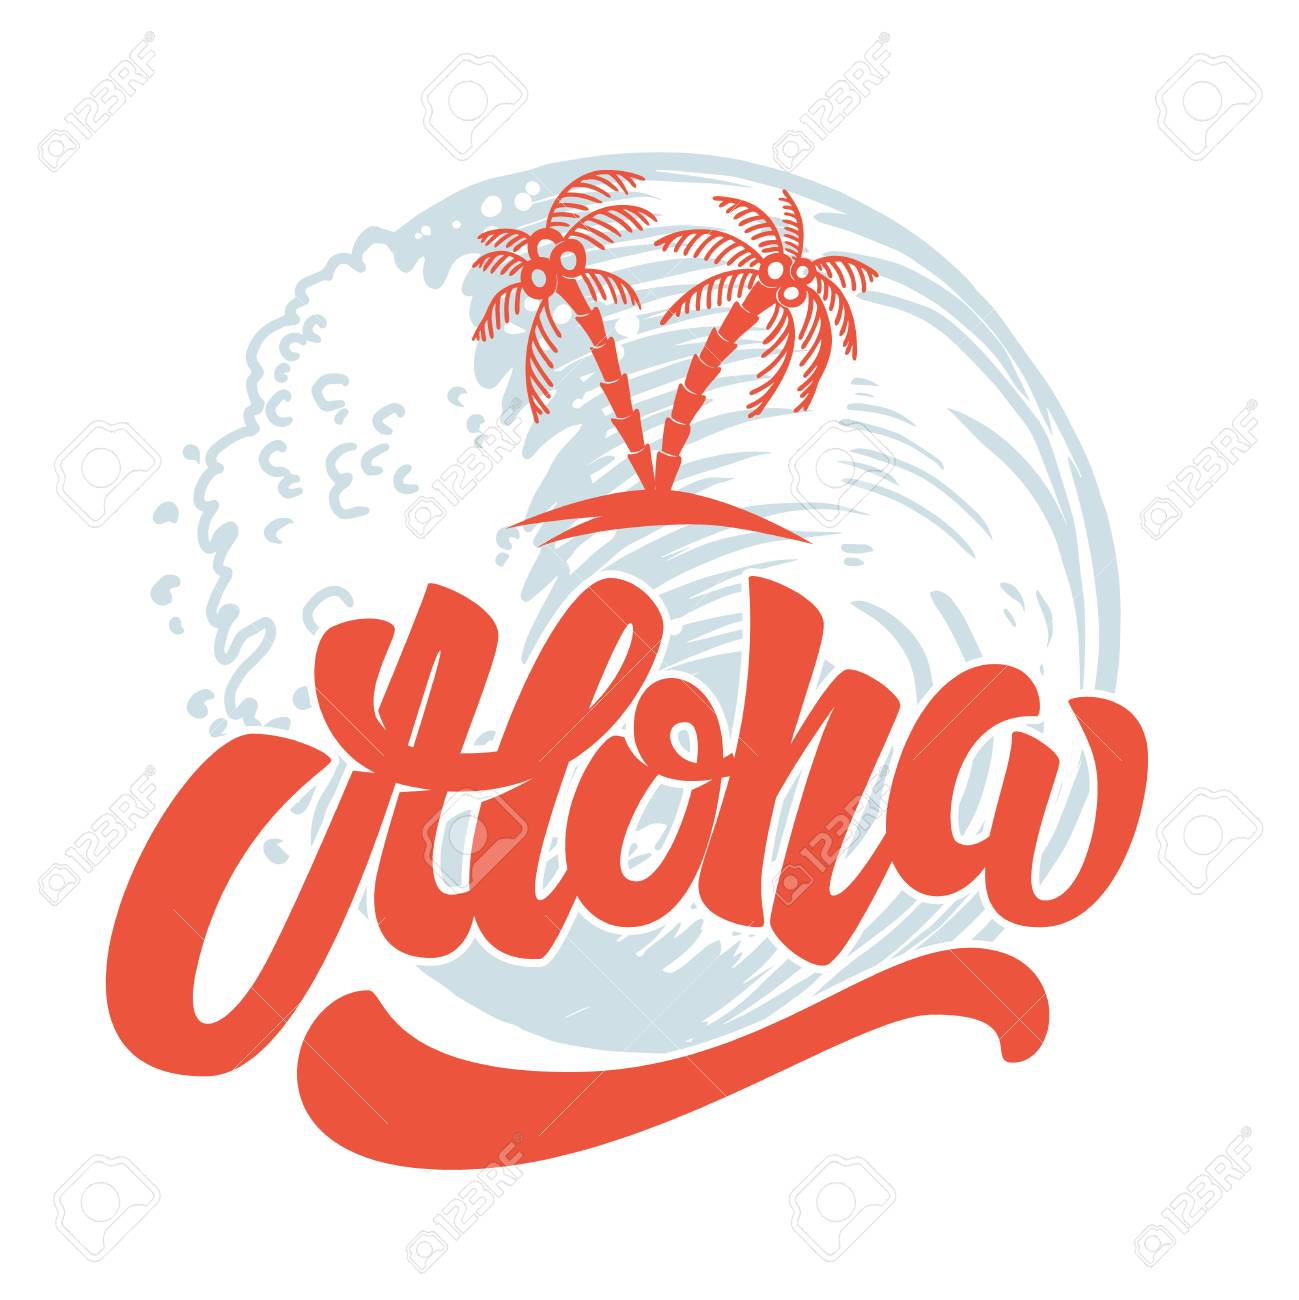 Aloha. Hand drawn lettering with sea waves background. Design element for poster, print, card, emblem, sign. - 105217216